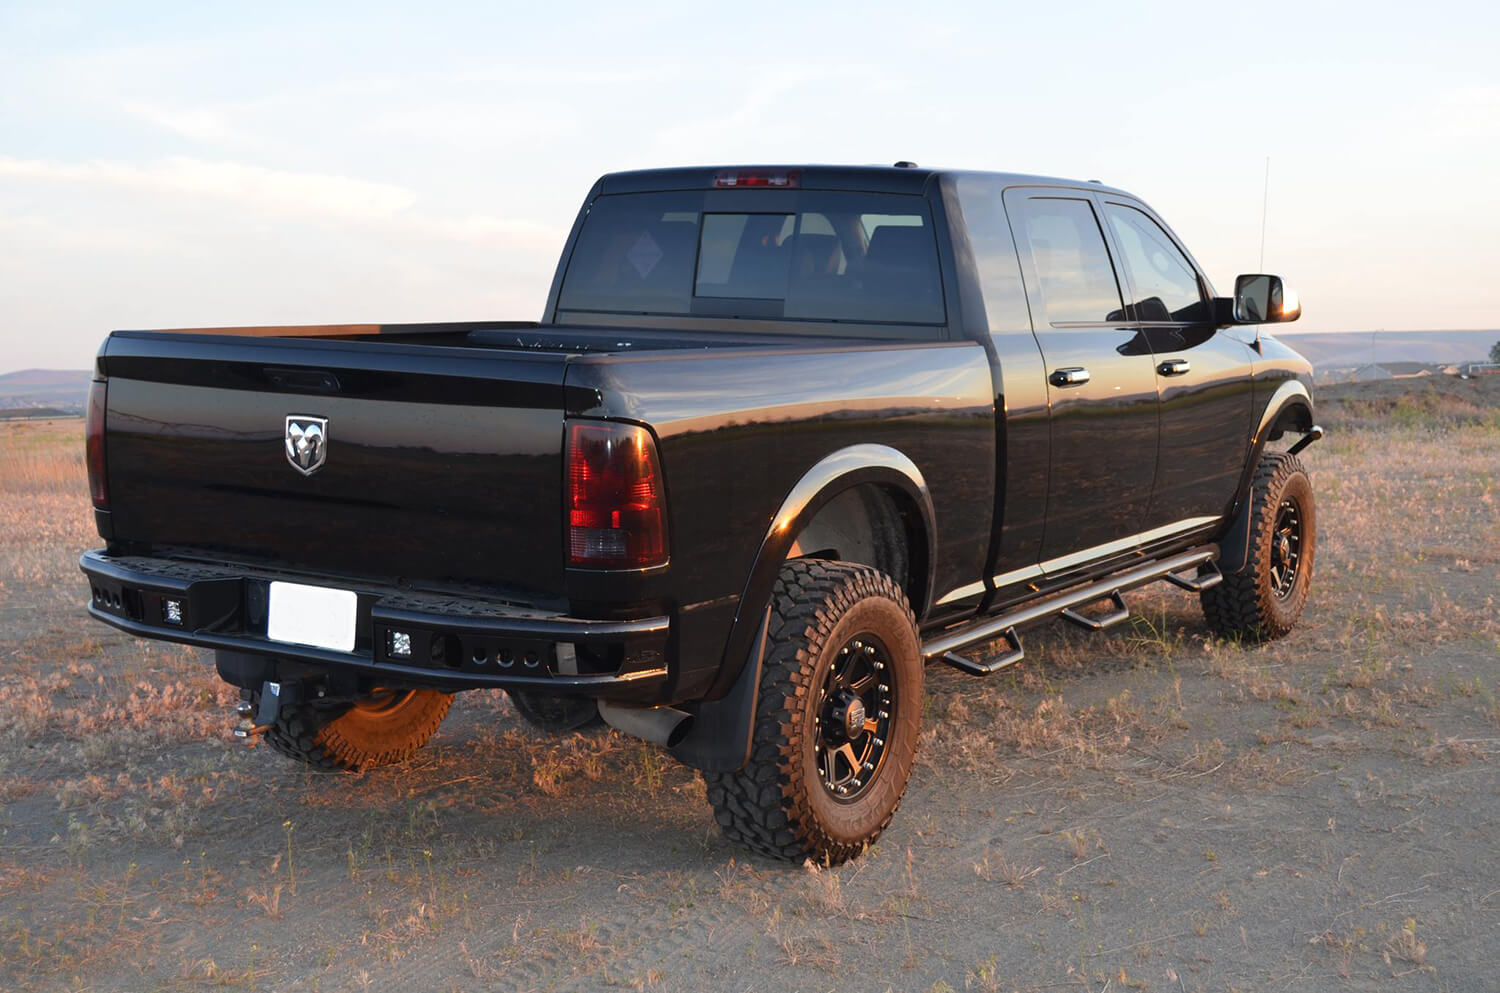 Addictive Desert Design Dimple R Rear Bumper Dodge RAM 1500 2003-2008